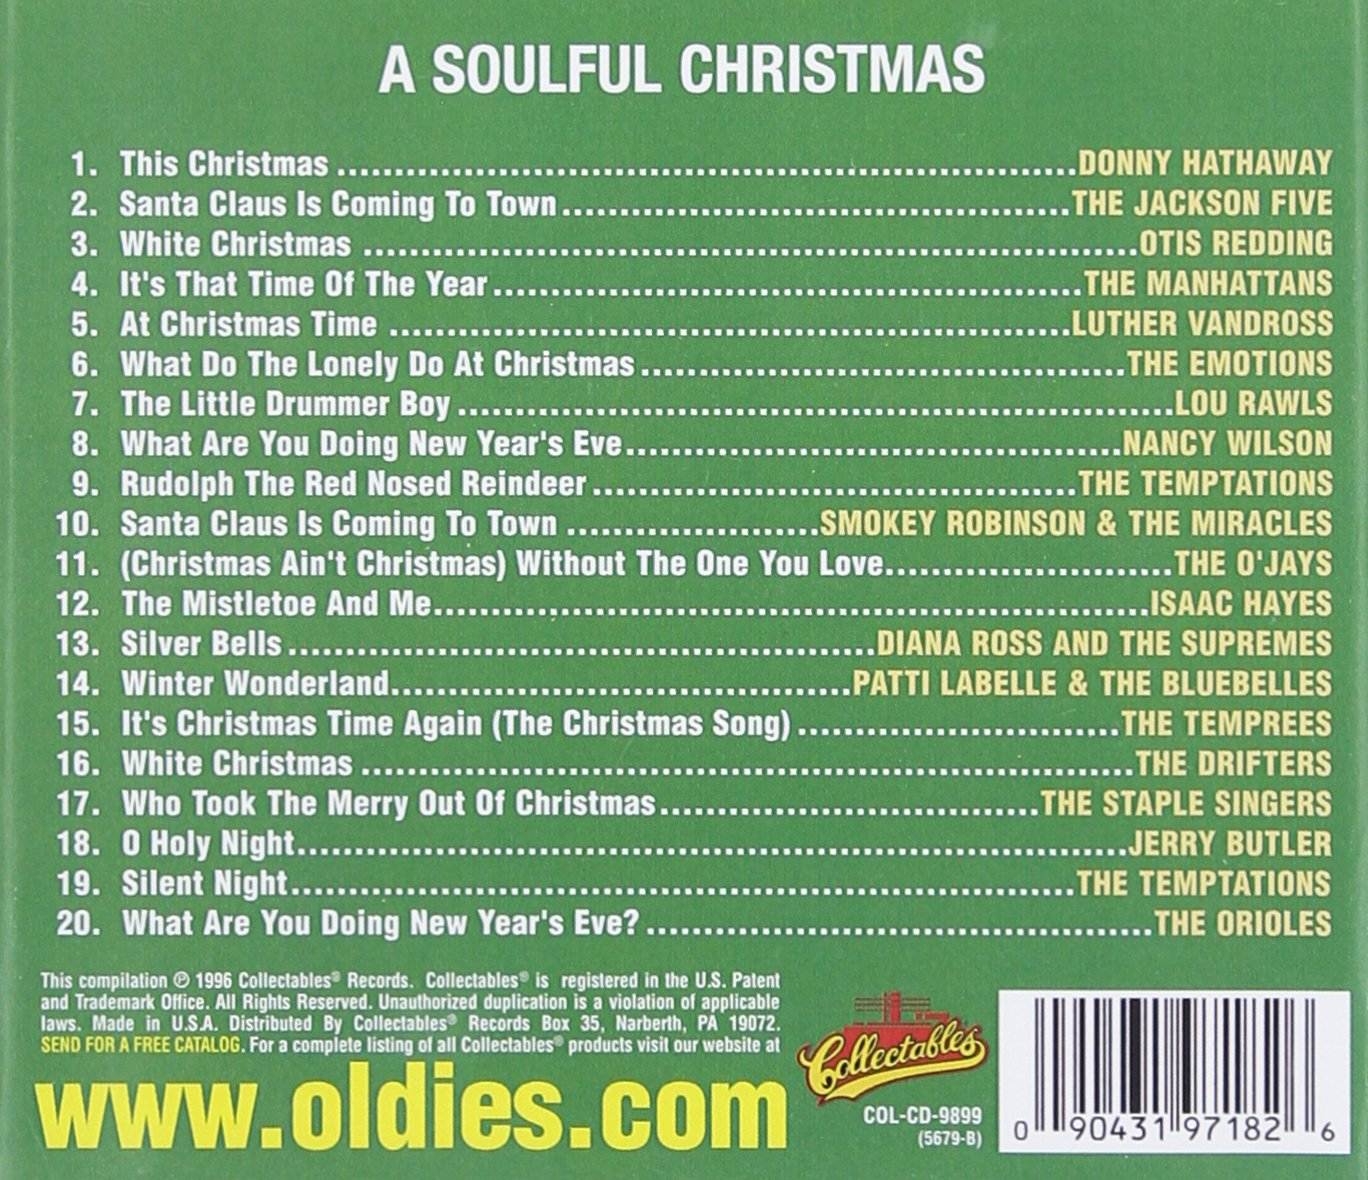 VARIOUS ARTISTS - Soulful Christmas 1 - Amazon.com Music